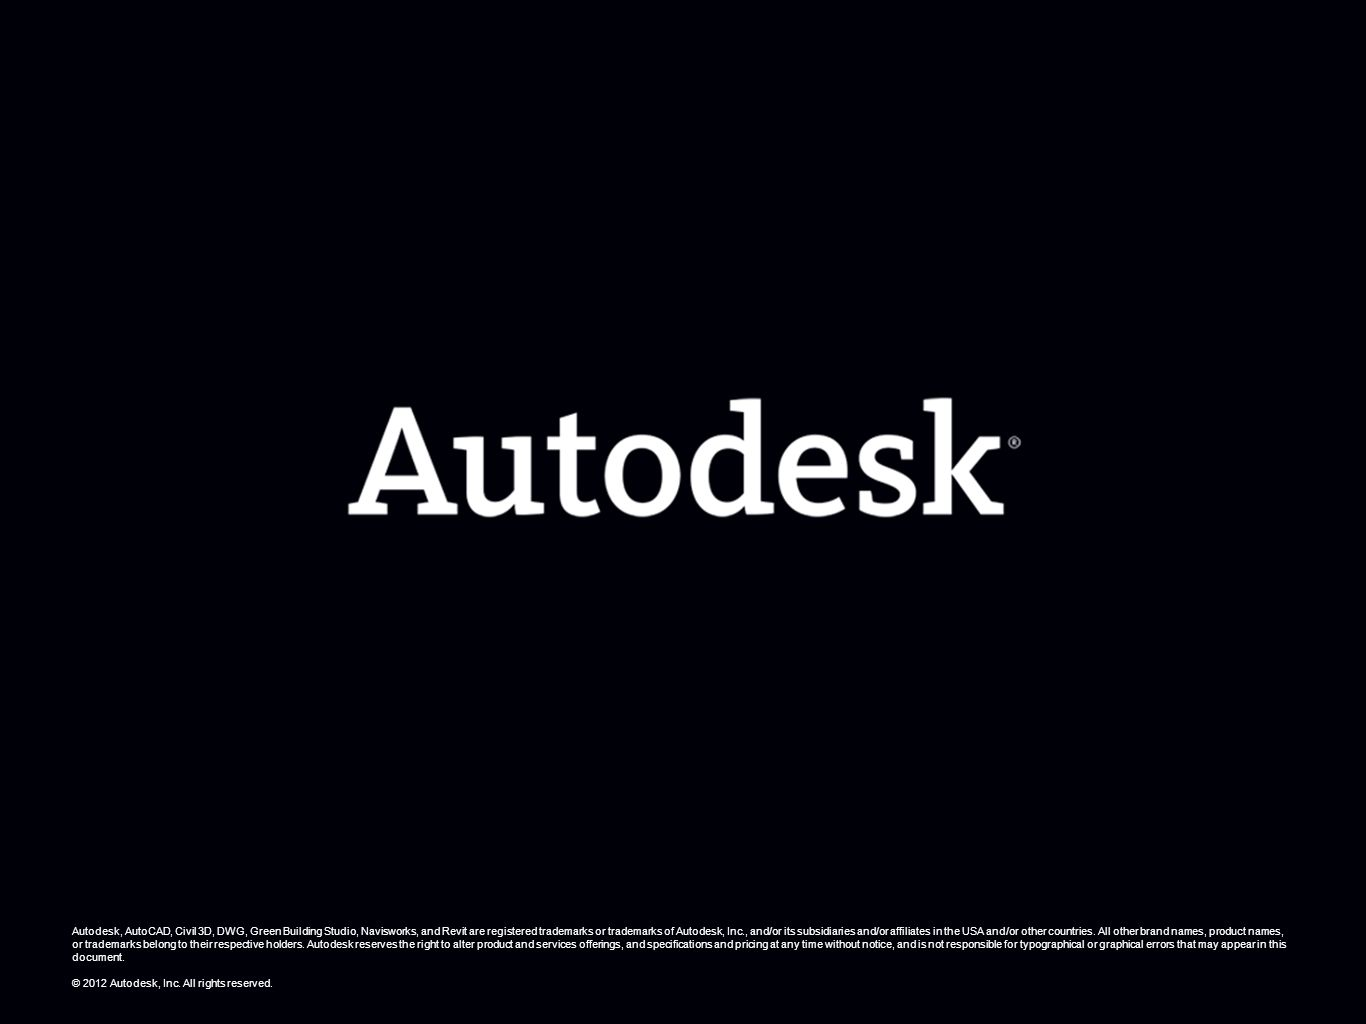 Autodesk, AutoCAD, Civil 3D, DWG, Green Building Studio, Navisworks, and Revit are registered trademarks or trademarks of Autodesk, Inc., and/or its subsidiaries and/or affiliates in the USA and/or other countries. All other brand names, product names, or trademarks belong to their respective holders. Autodesk reserves the right to alter product and services offerings, and specifications and pricing at any time without notice, and is not responsible for typographical or graphical errors that may appear in this document.